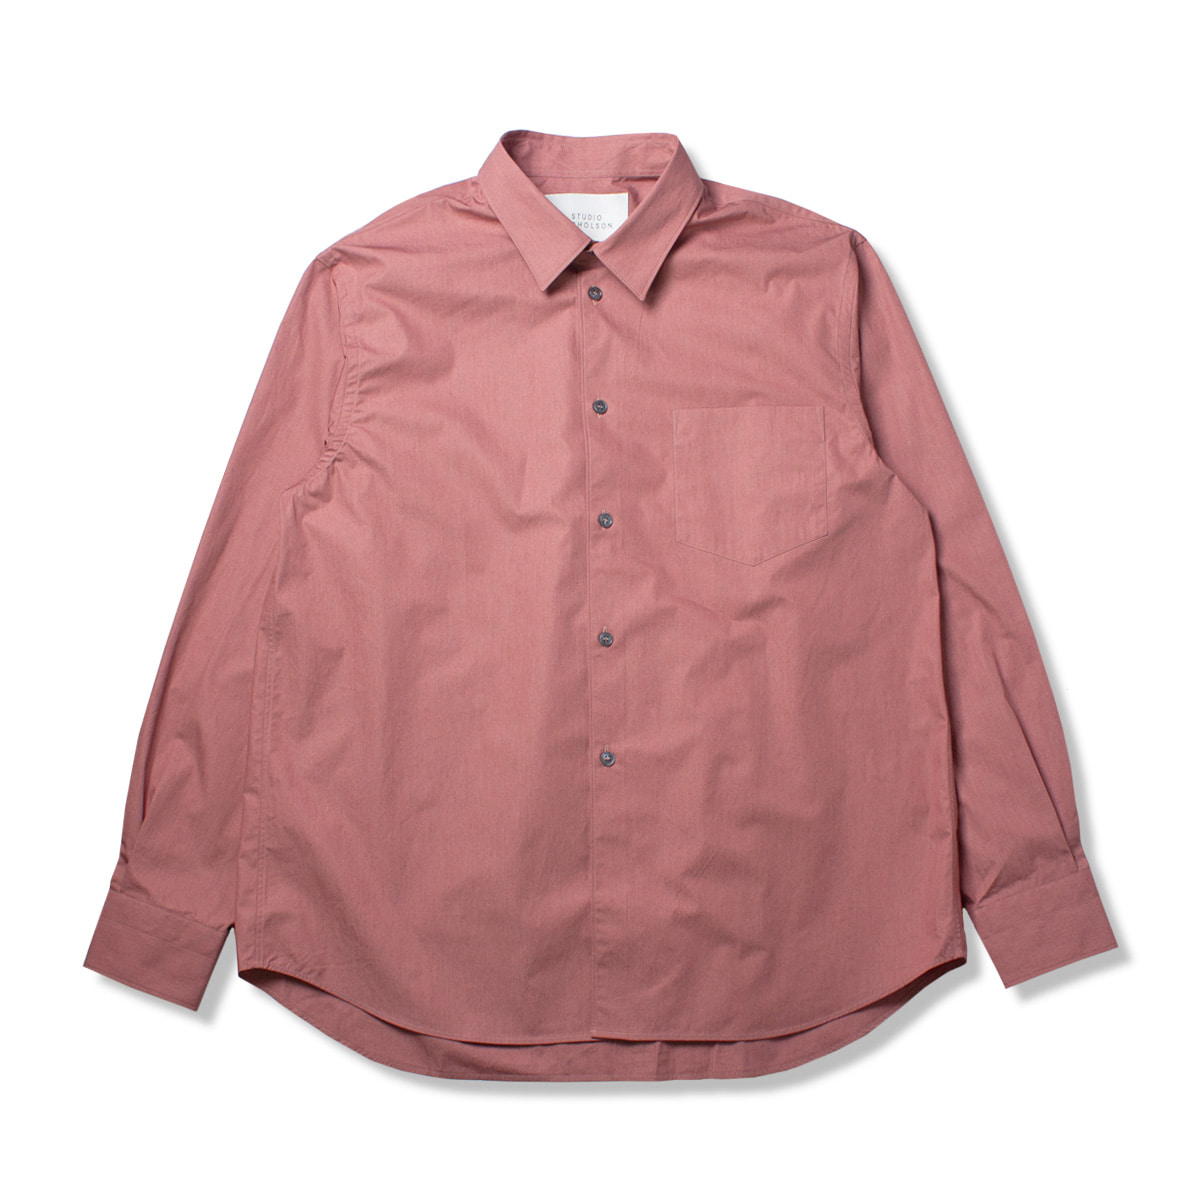 [STUDIO NICHOLSON] SOVERSIZED POINT COLLAR SHIRT 'MEDINA PINK'